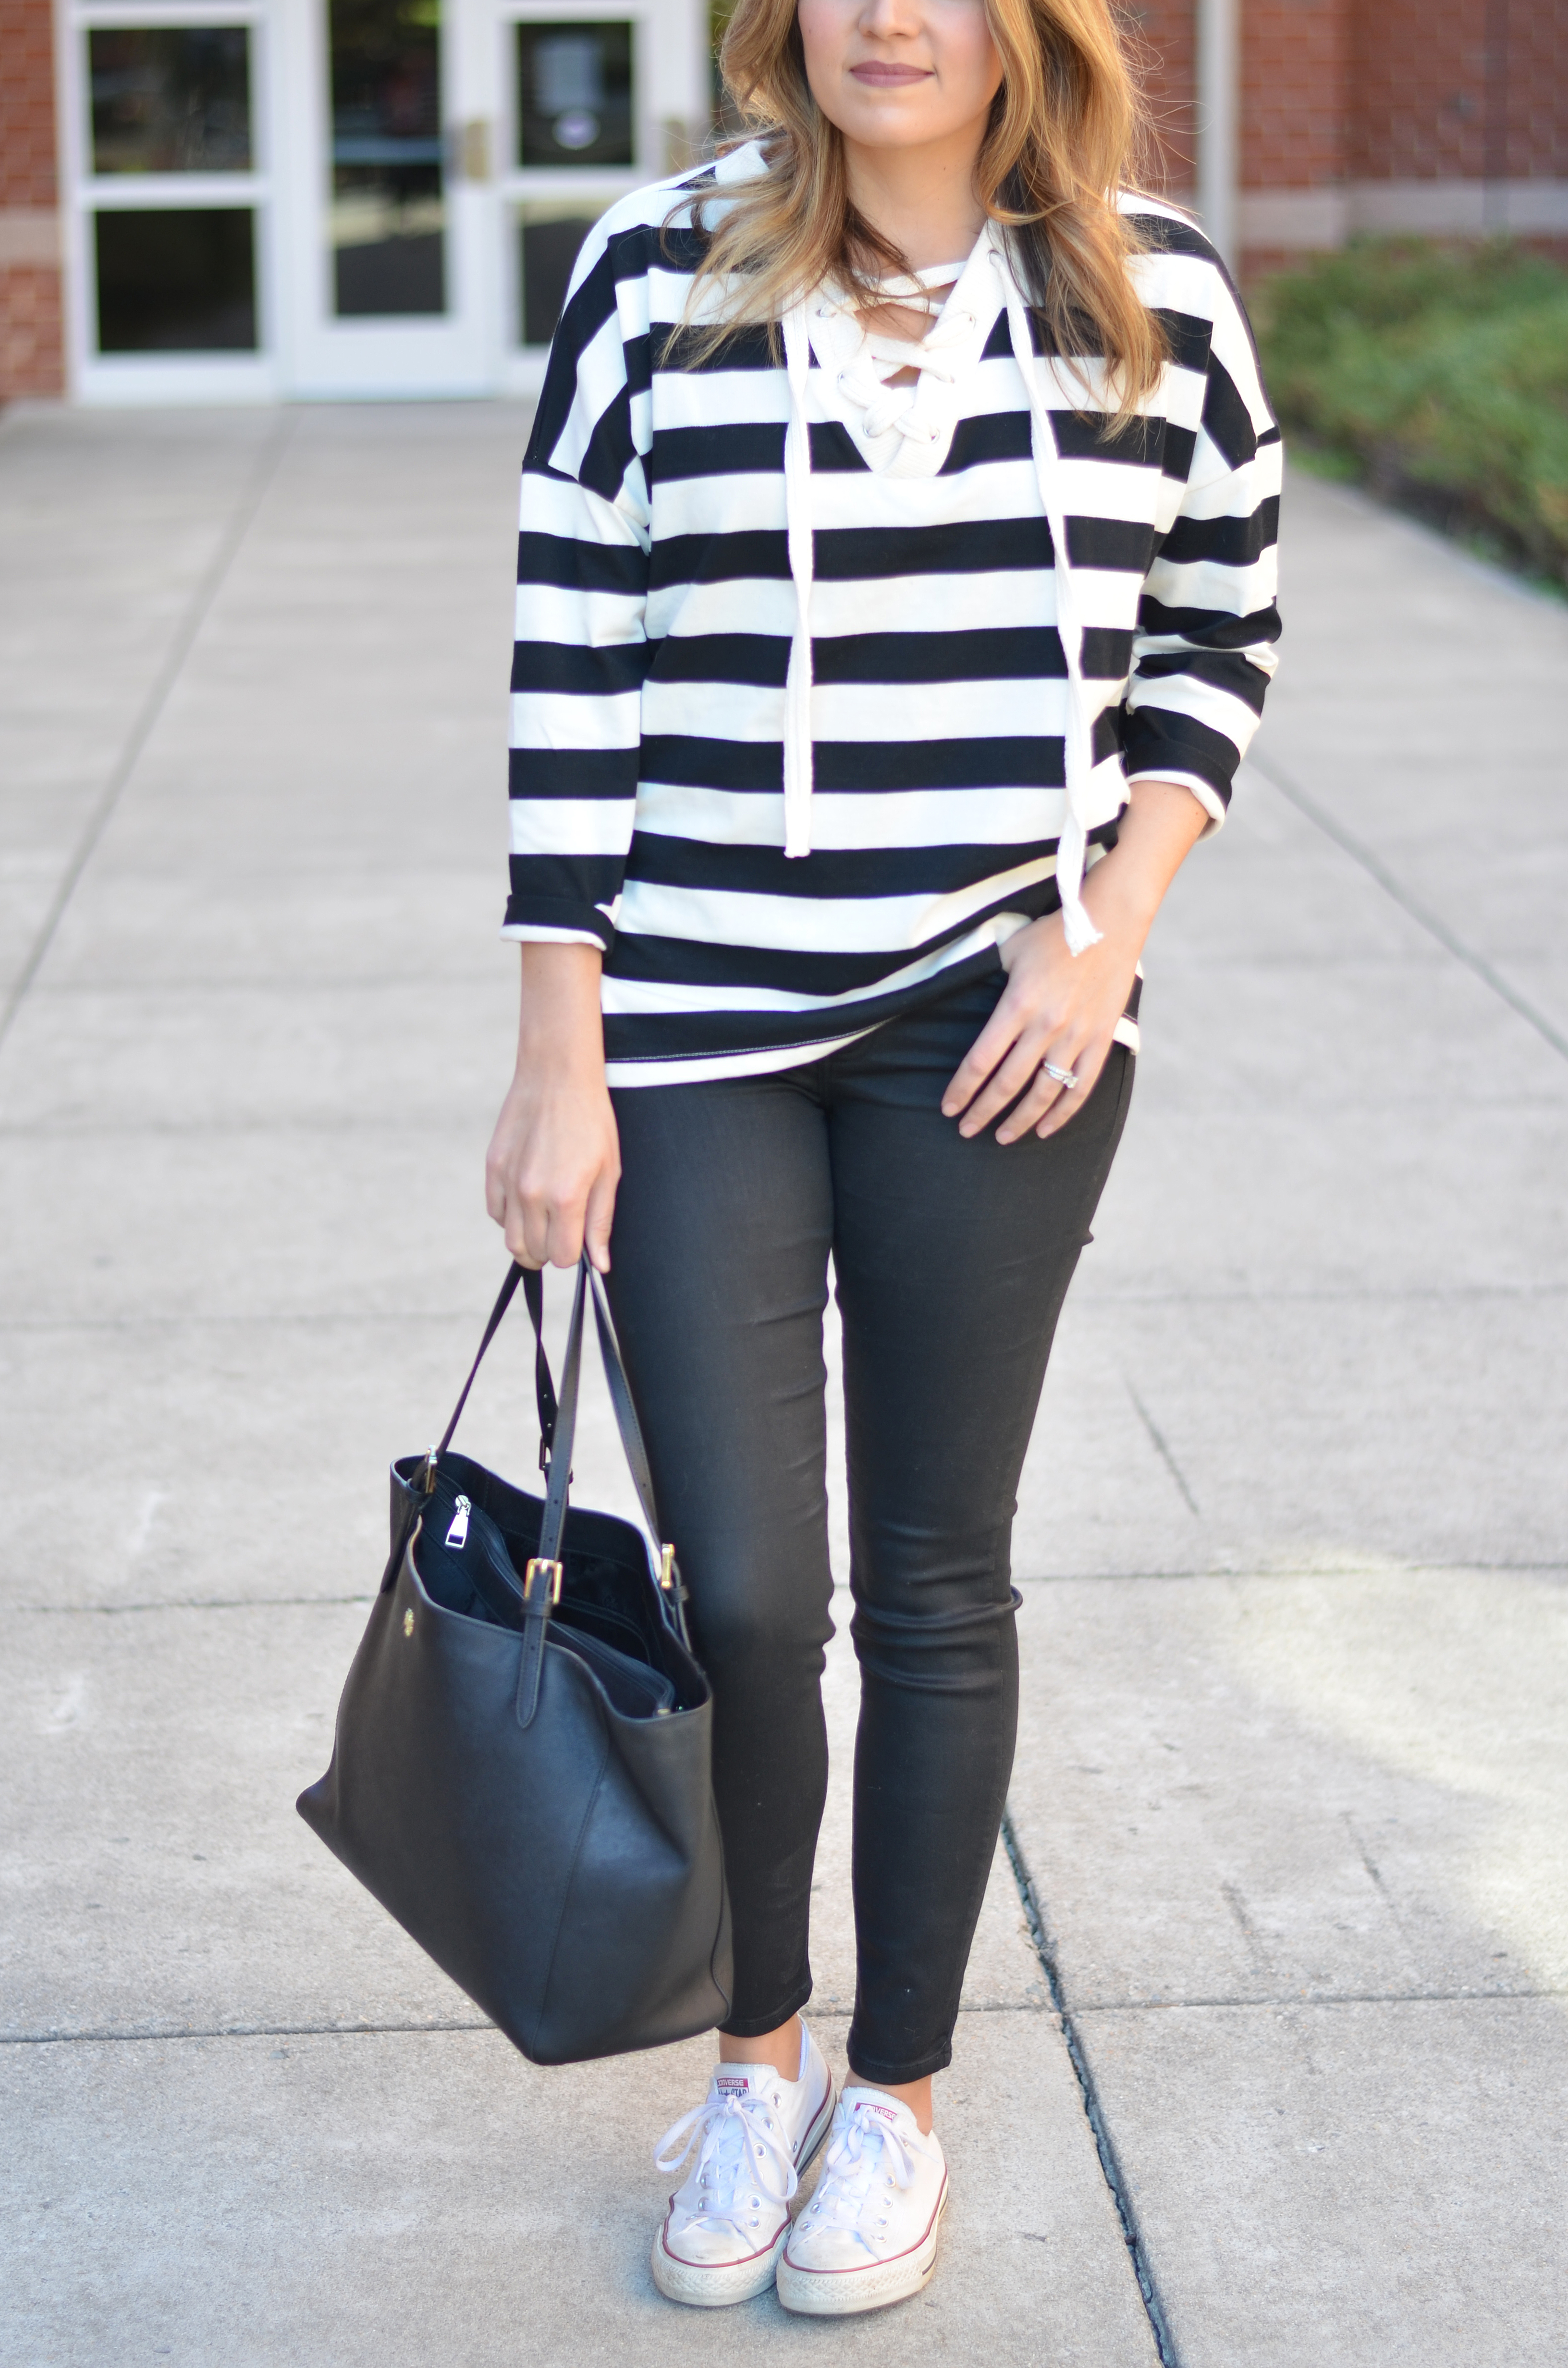 chic weekend outfit - black coated skinny jeans, stripe lace-up top, white converse outfit | www.bylaurenm.com